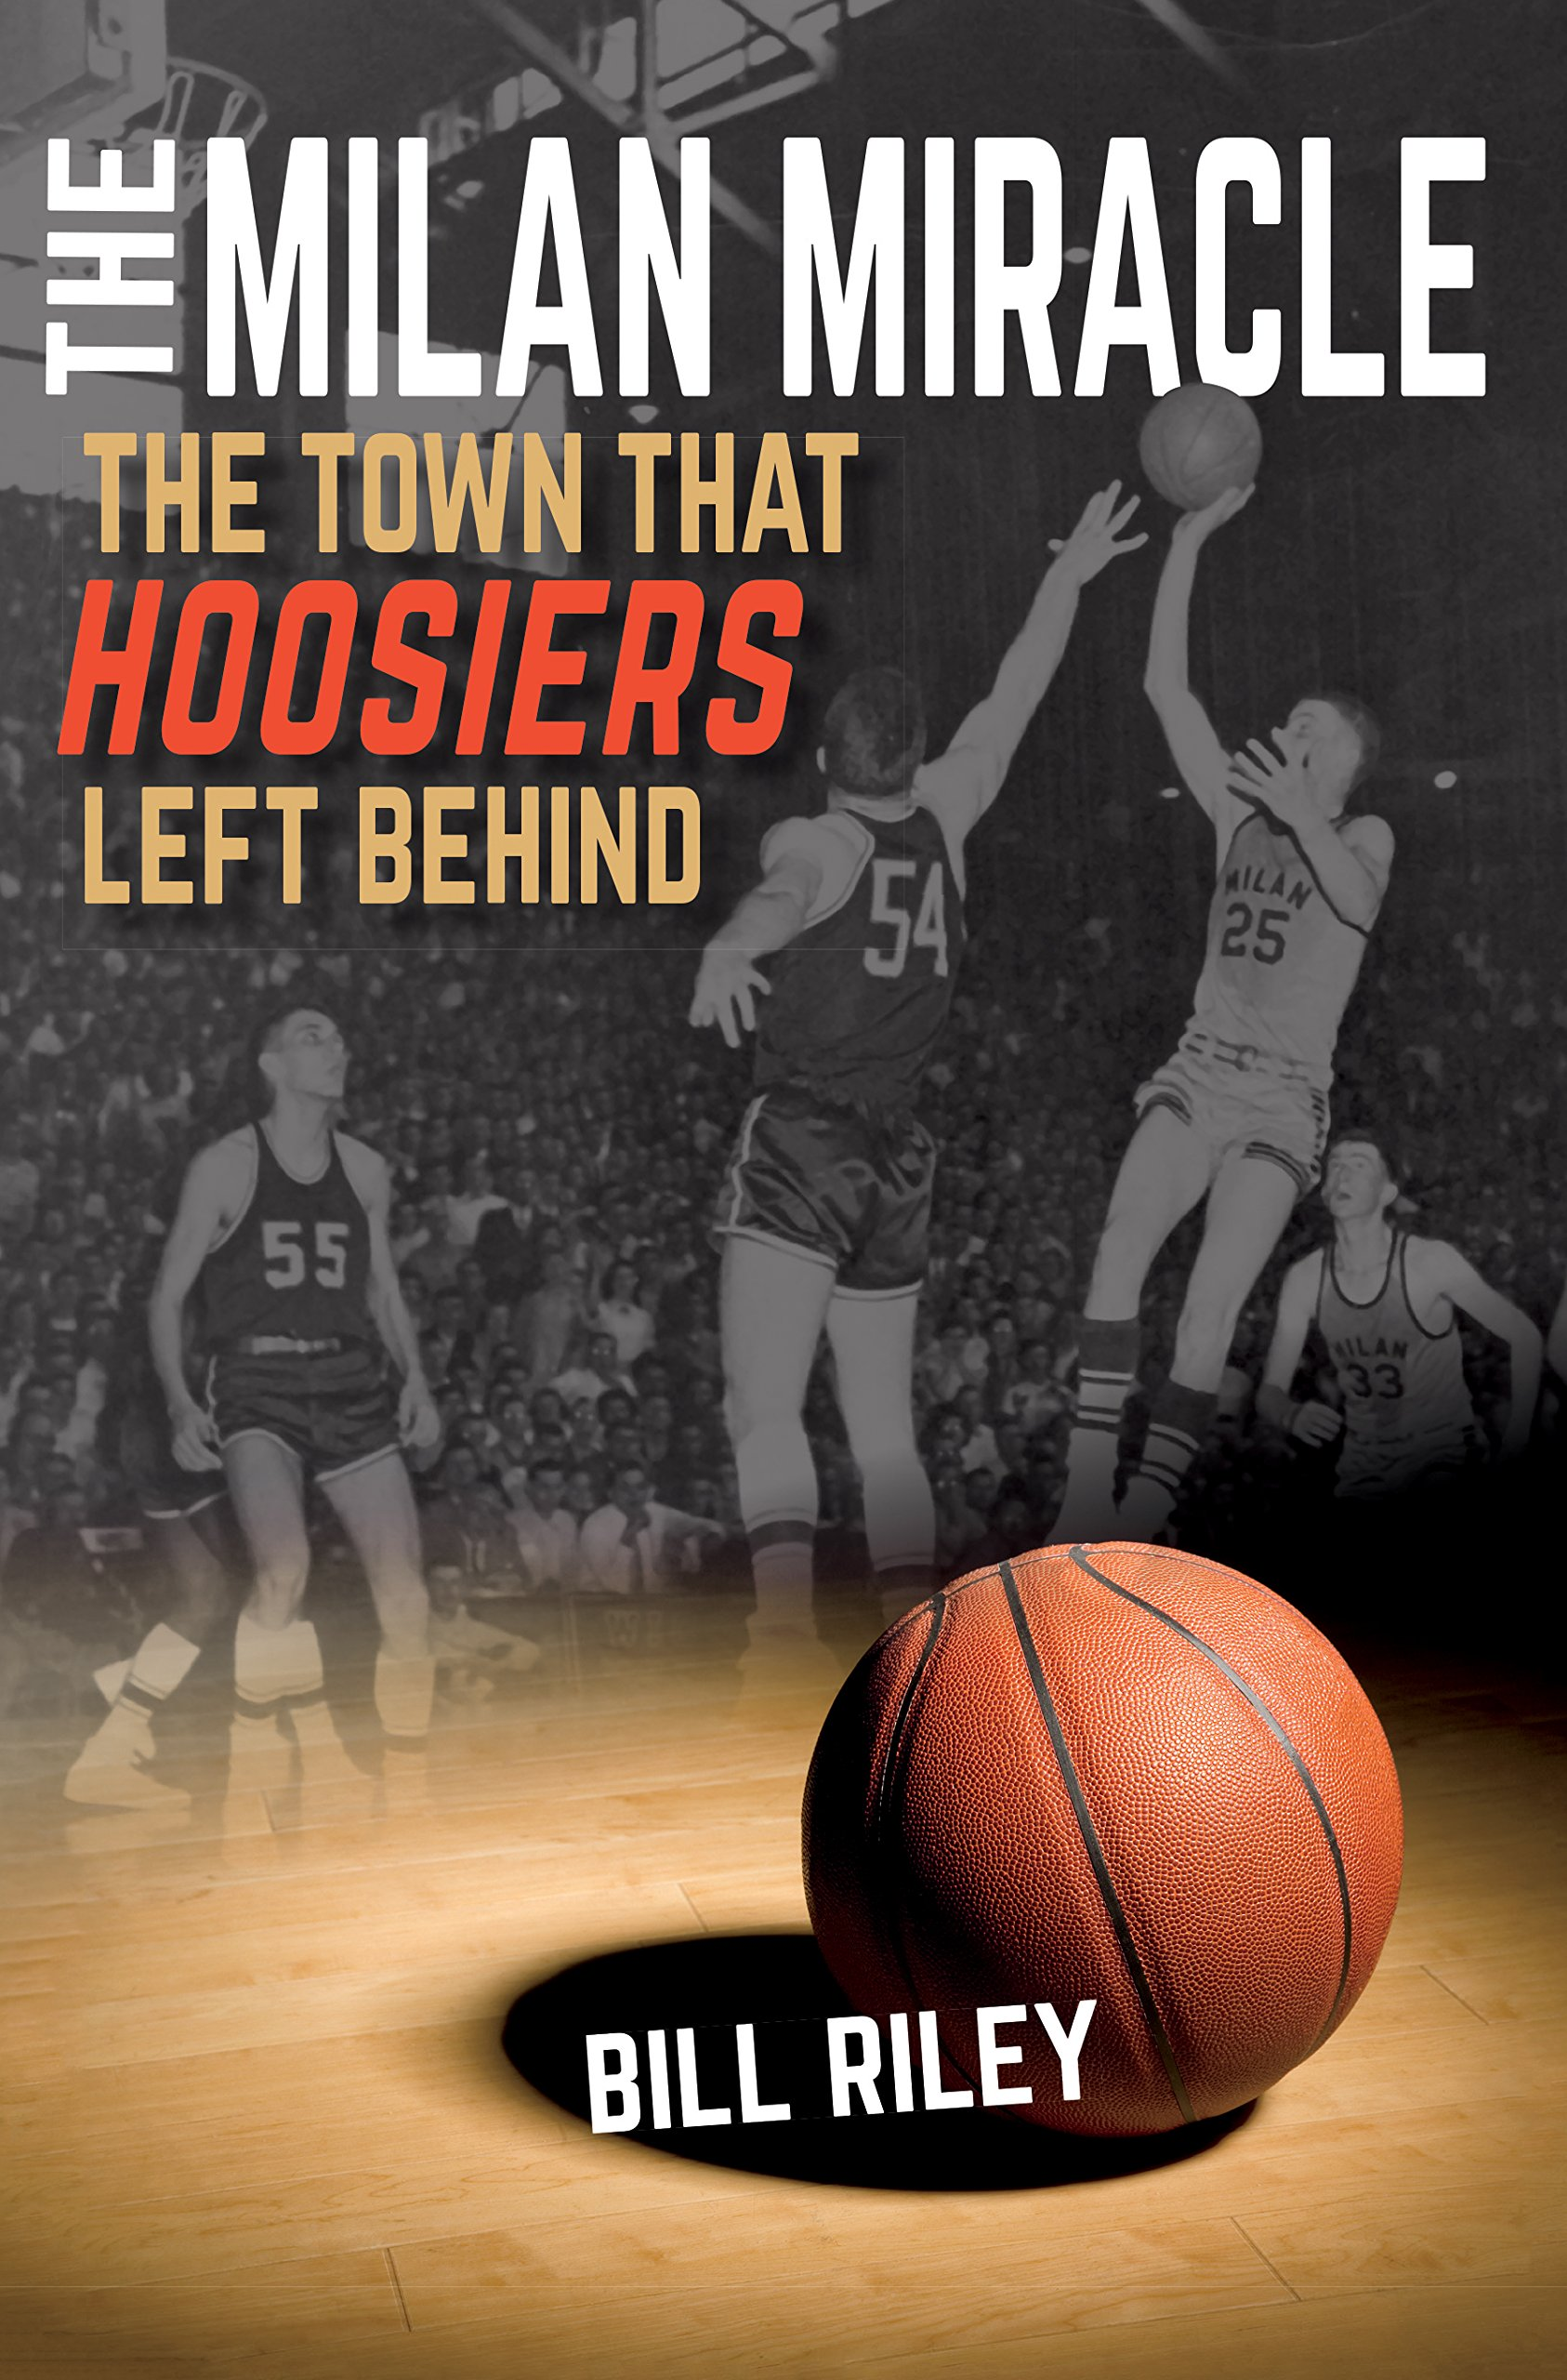 Download The Milan Miracle: The Town that Hoosiers Left Behind pdf